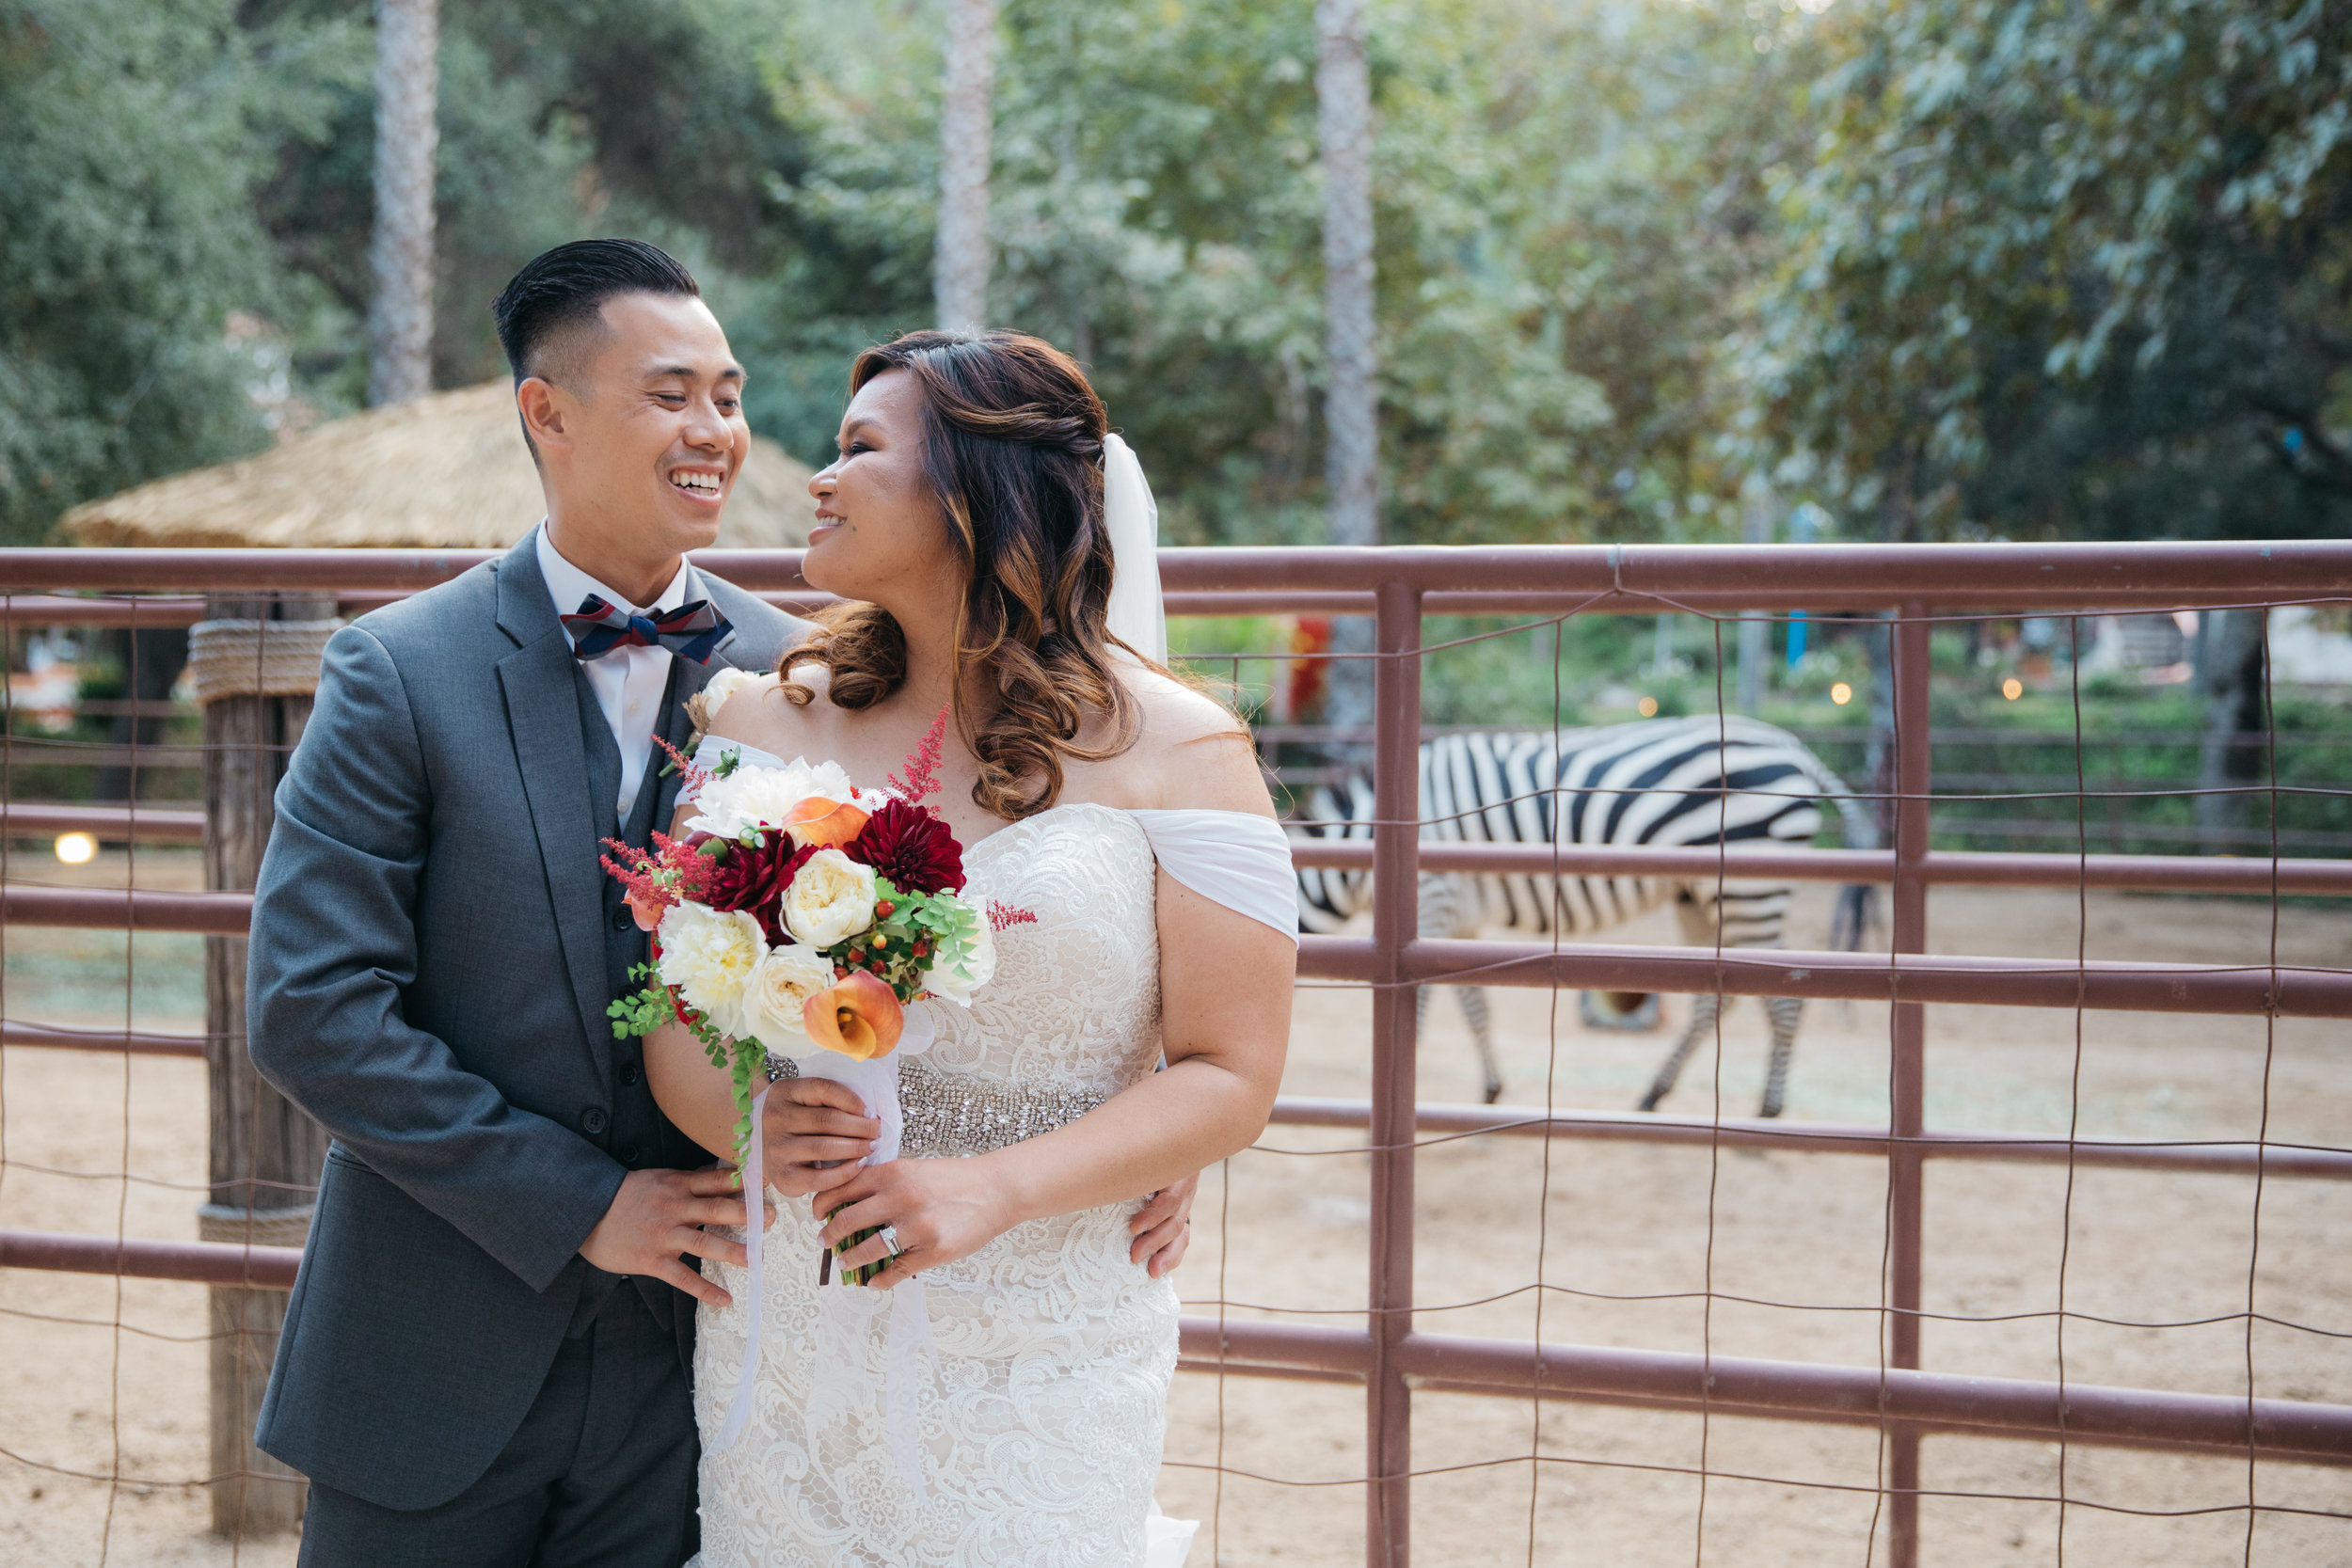 rancho-las-lomas-wedding-planner-best-wedding-planner-in-southern-california51.jpg